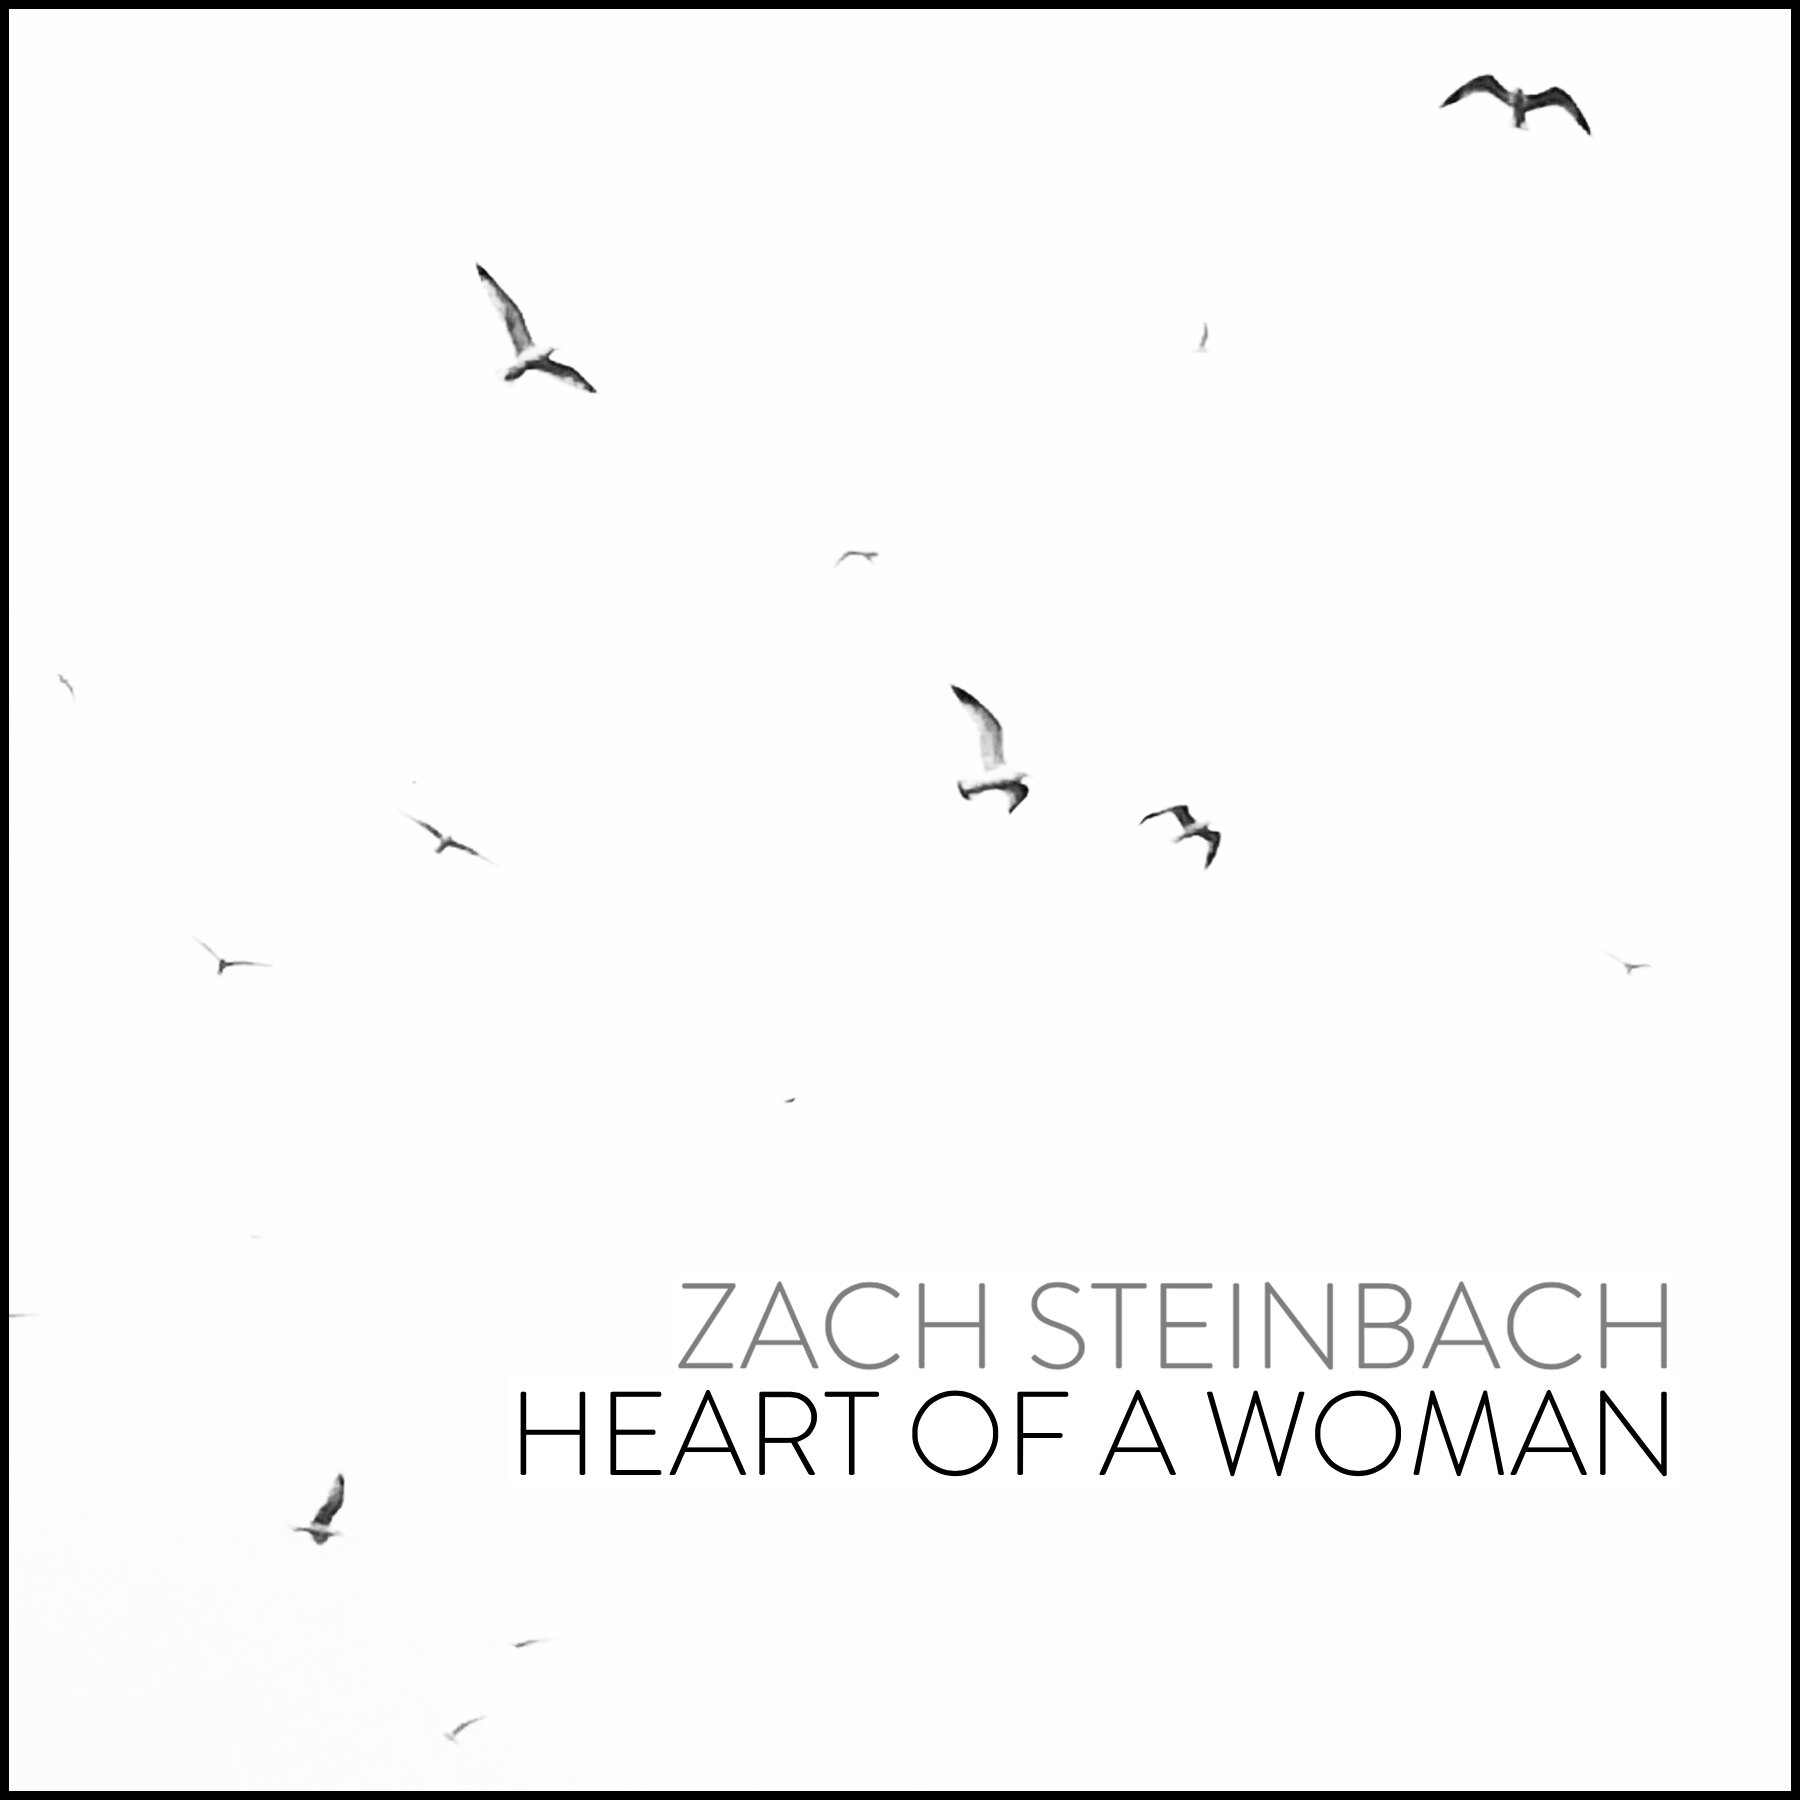 Heart Of A Woman (single, 2015)